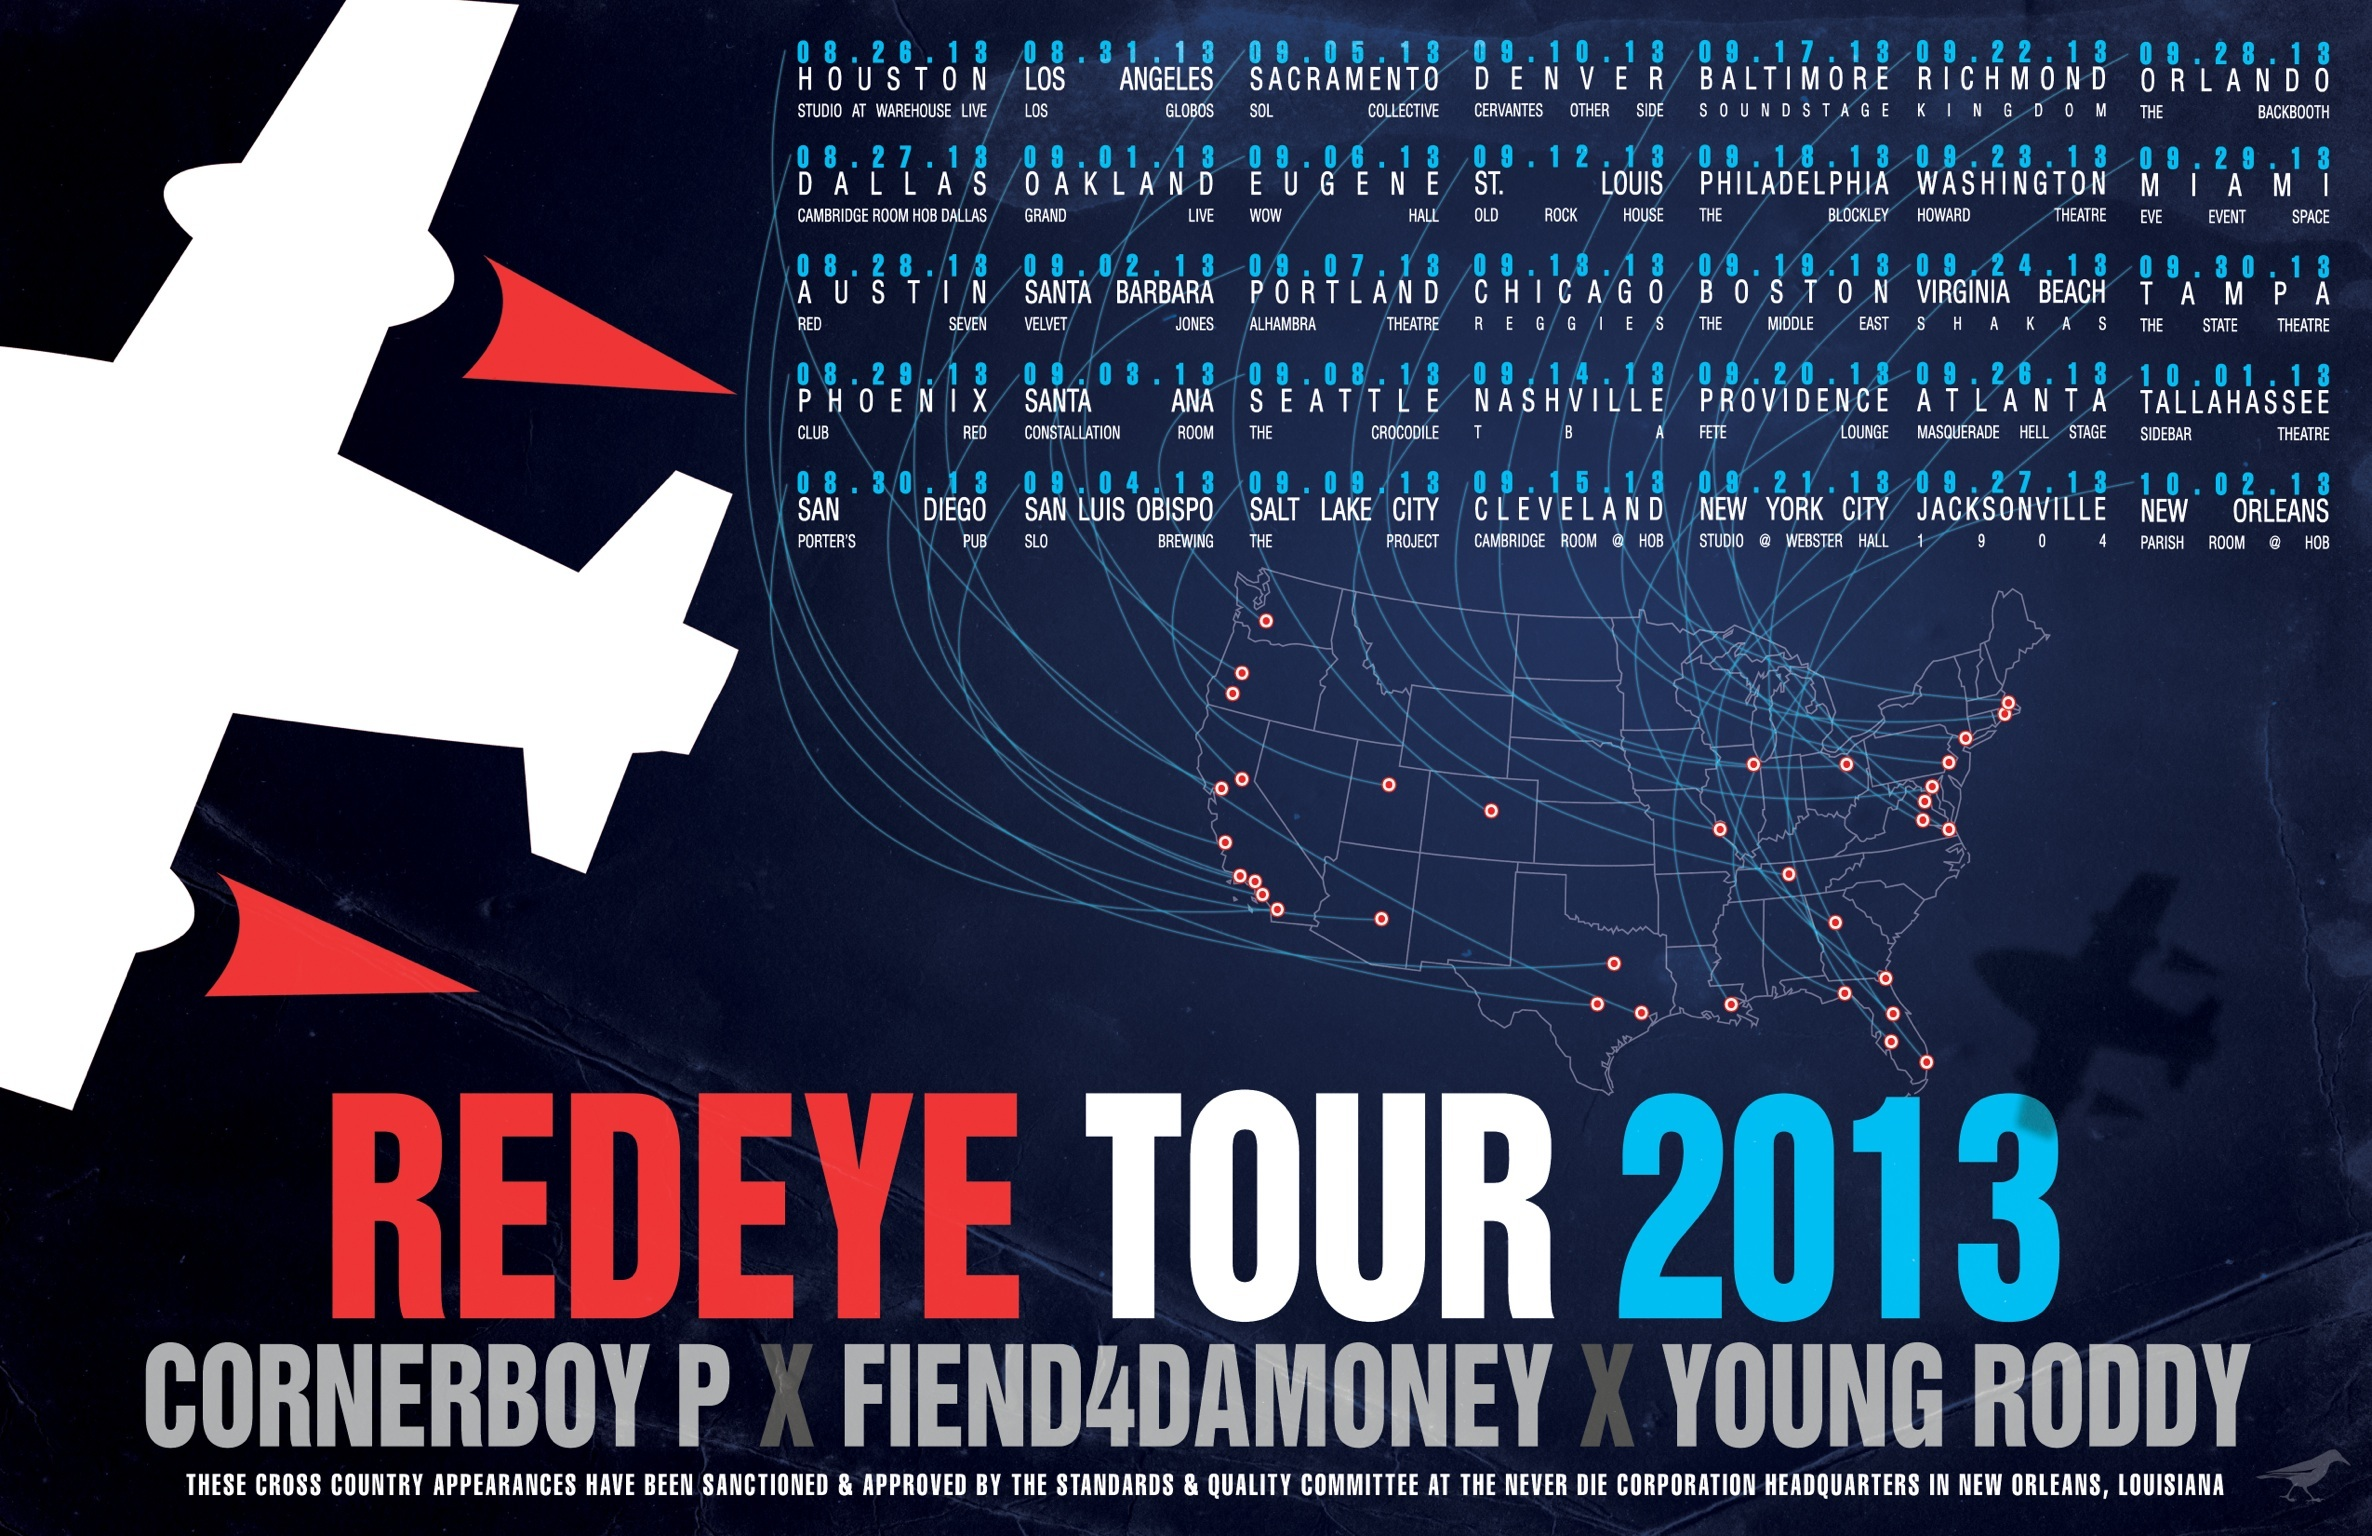 The Red Eye Tour